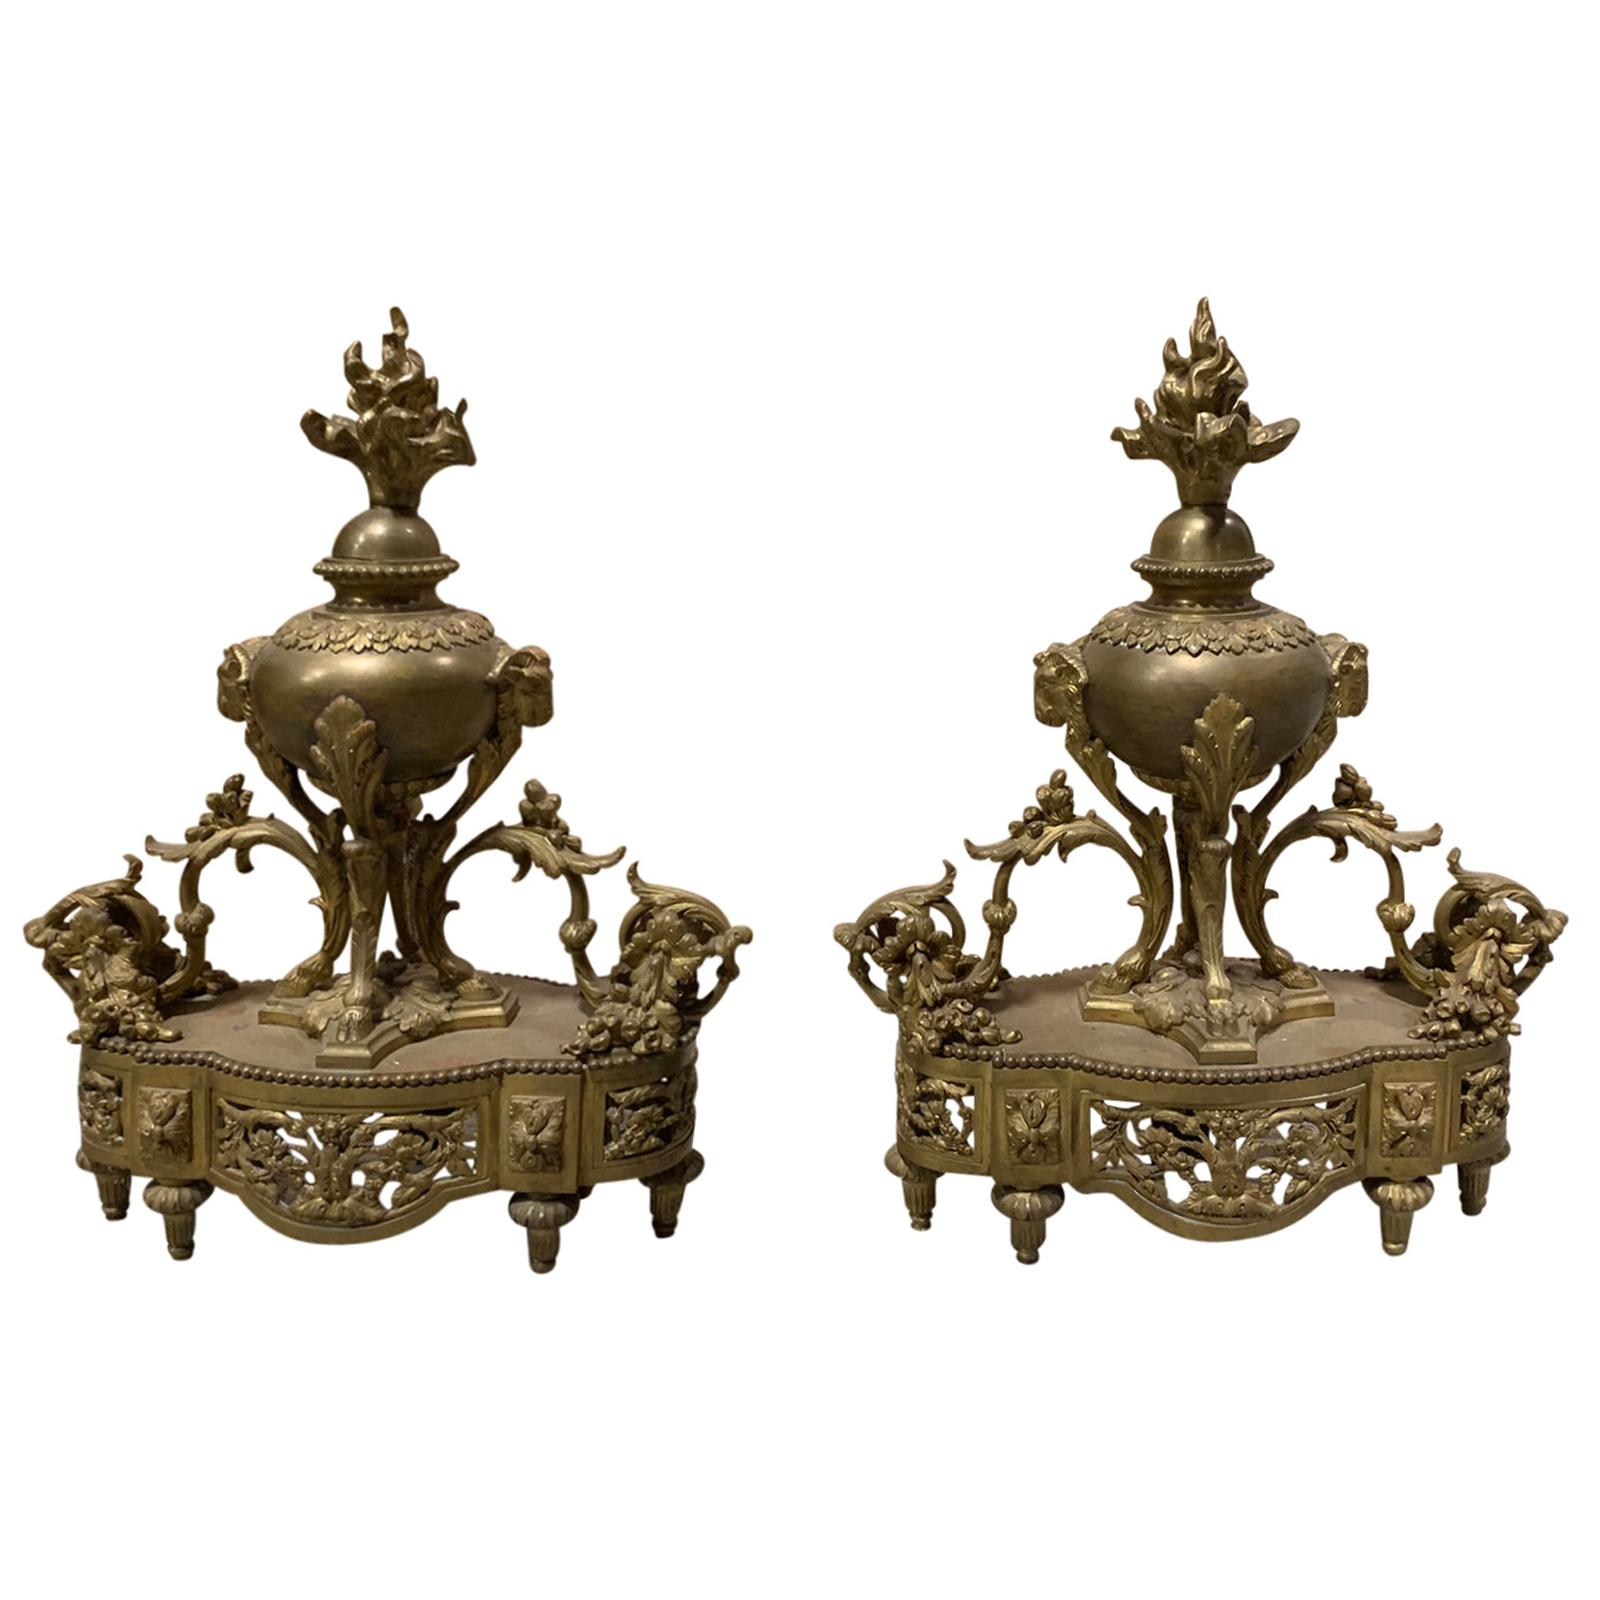 Pair of 19th Century French Bronze Fireplace Chenets